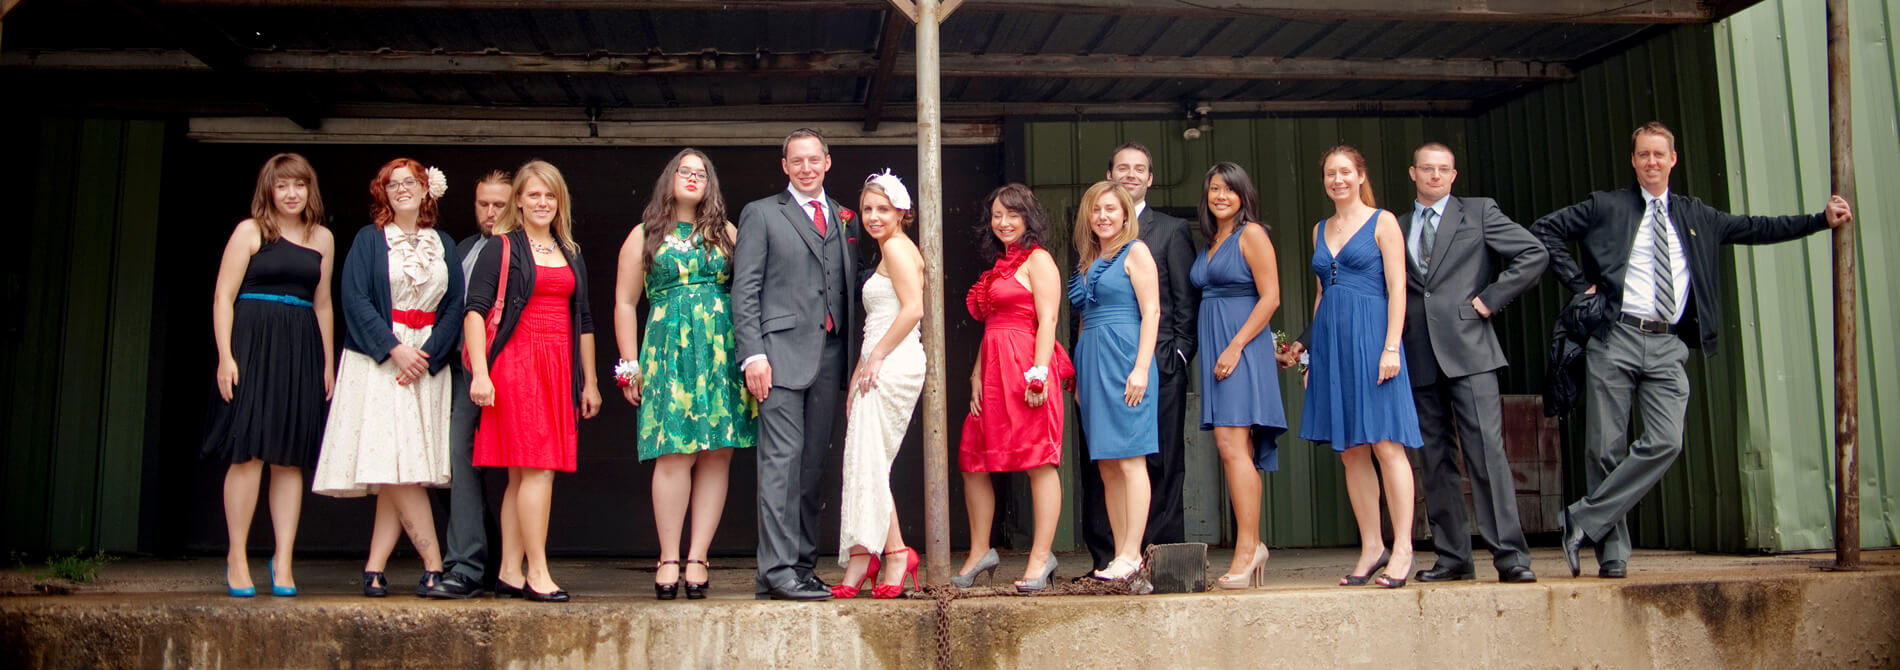 men and women in formal wear posing on an abandoned loading dock